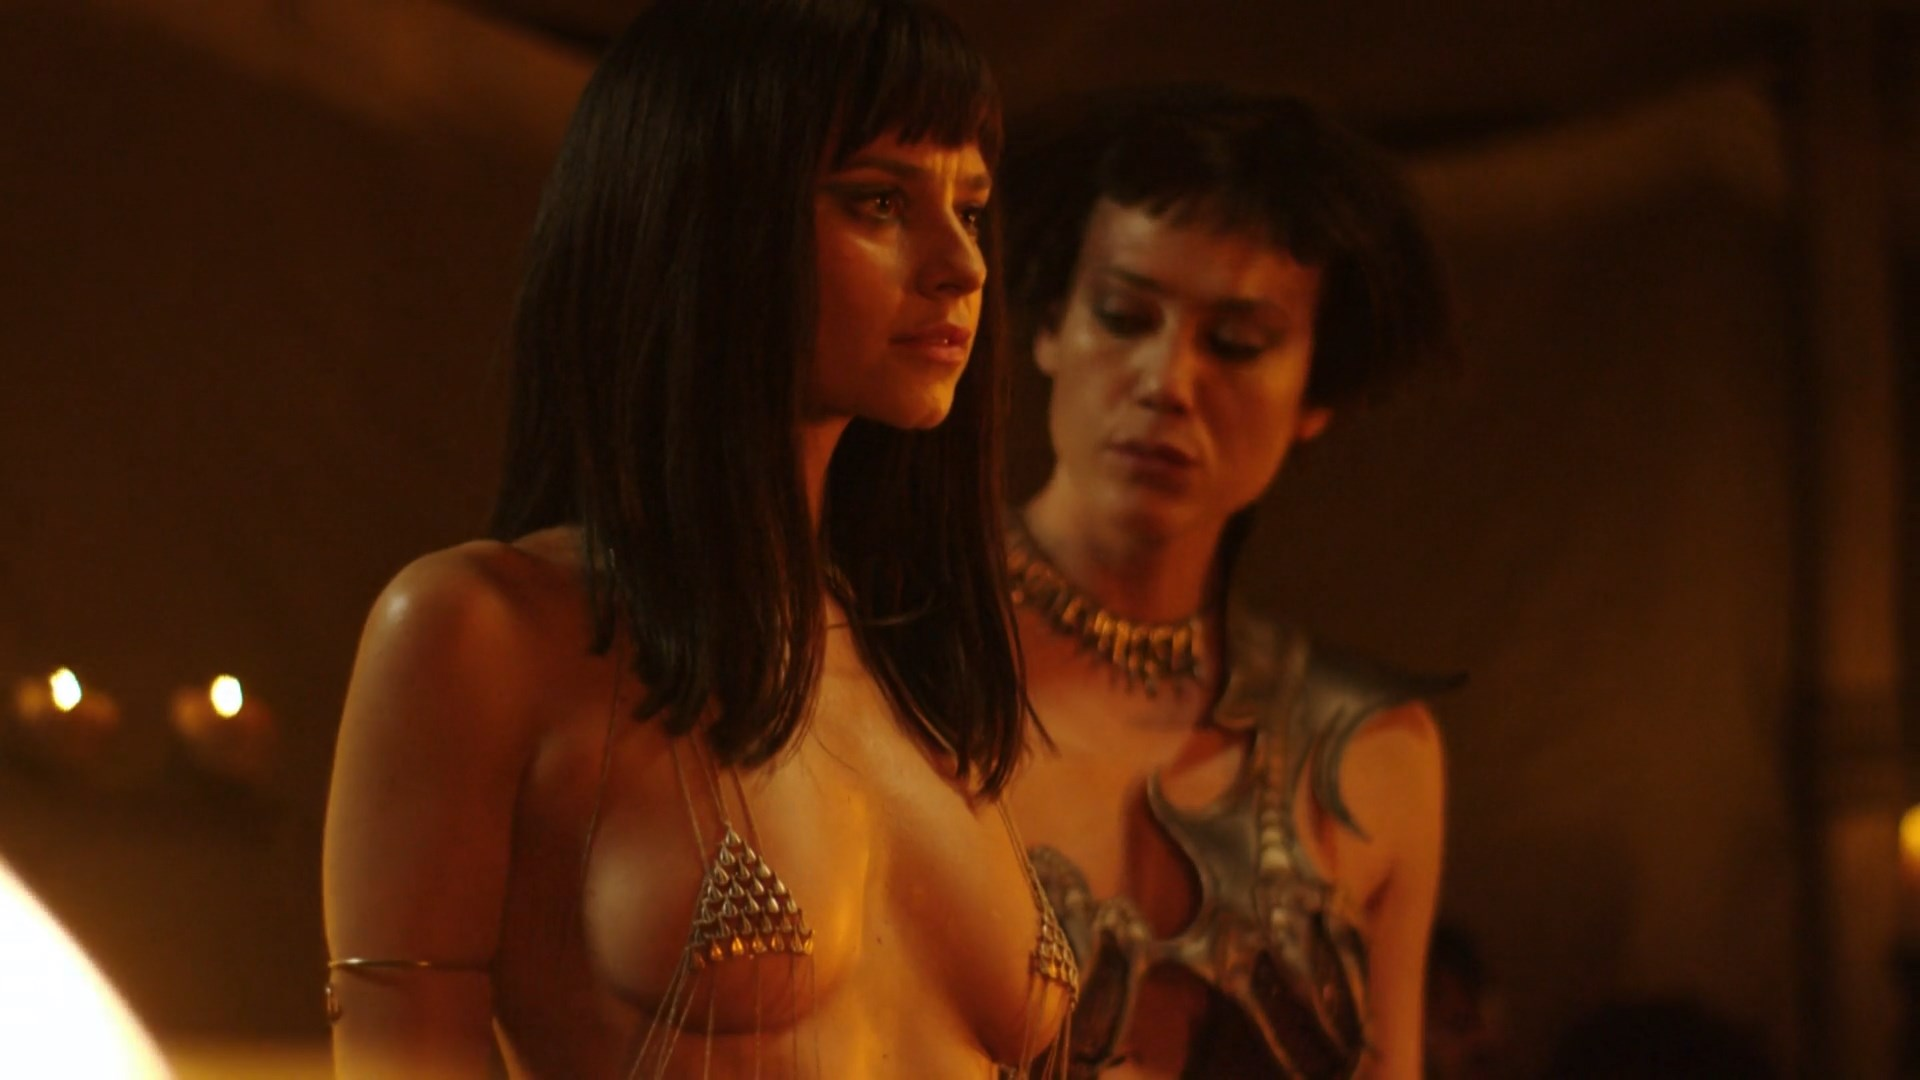 Katy Louise Saunders sexy - The Scorpion King Book of Souls (2018)